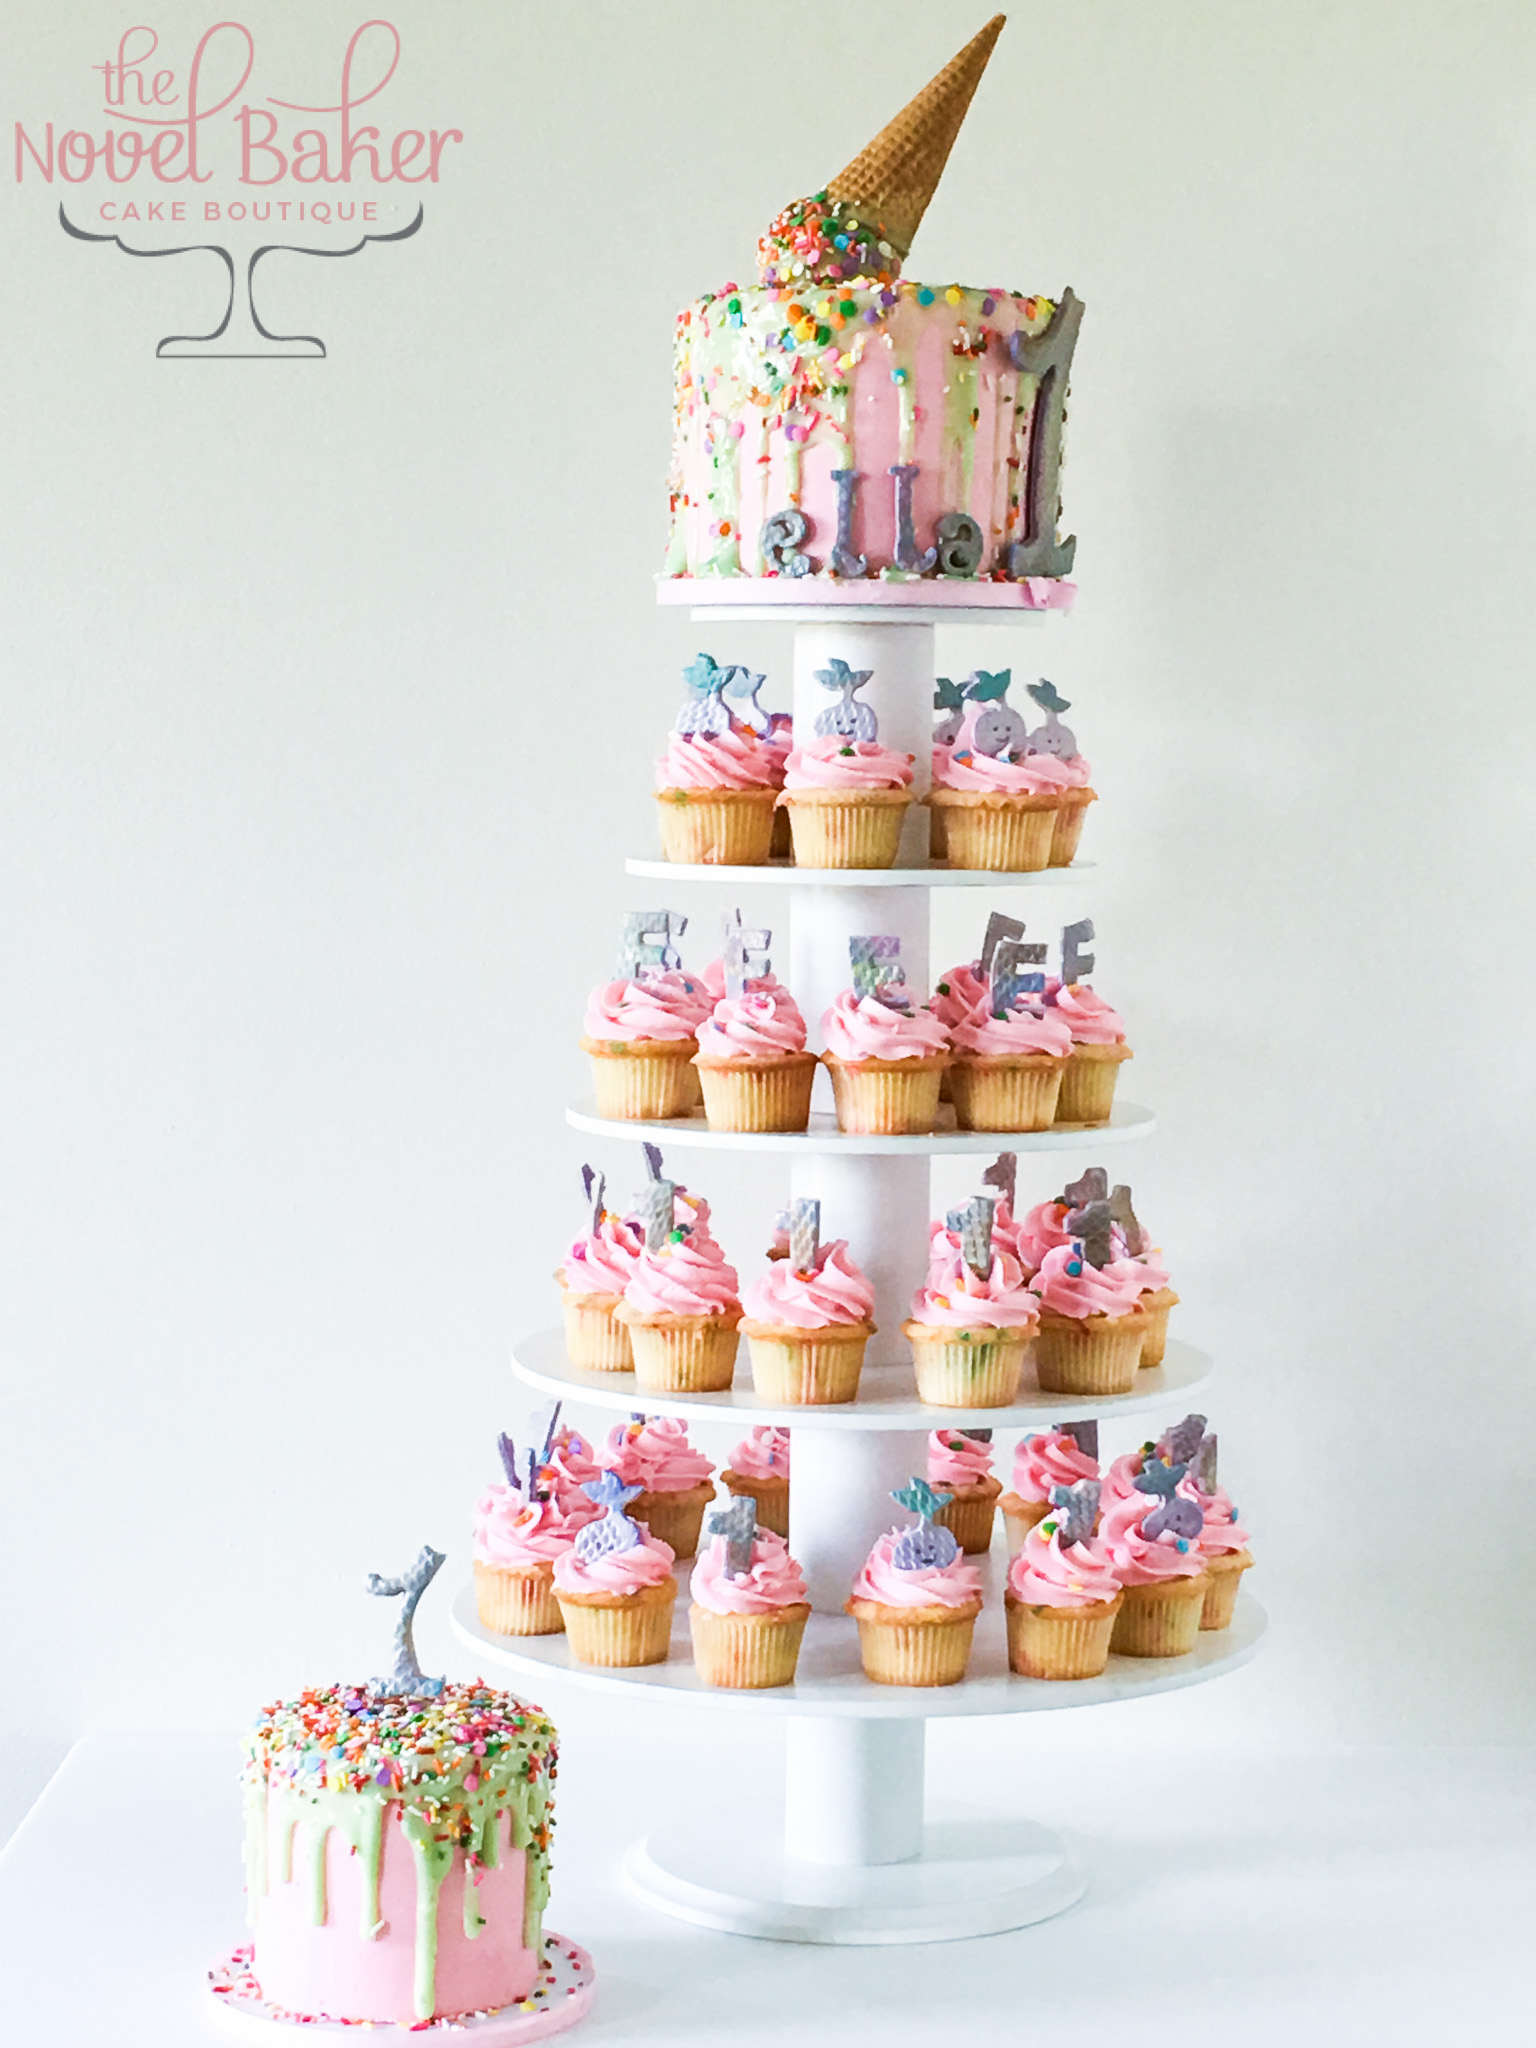 Ice Cream Cone Drip Cake Thenovelbaker